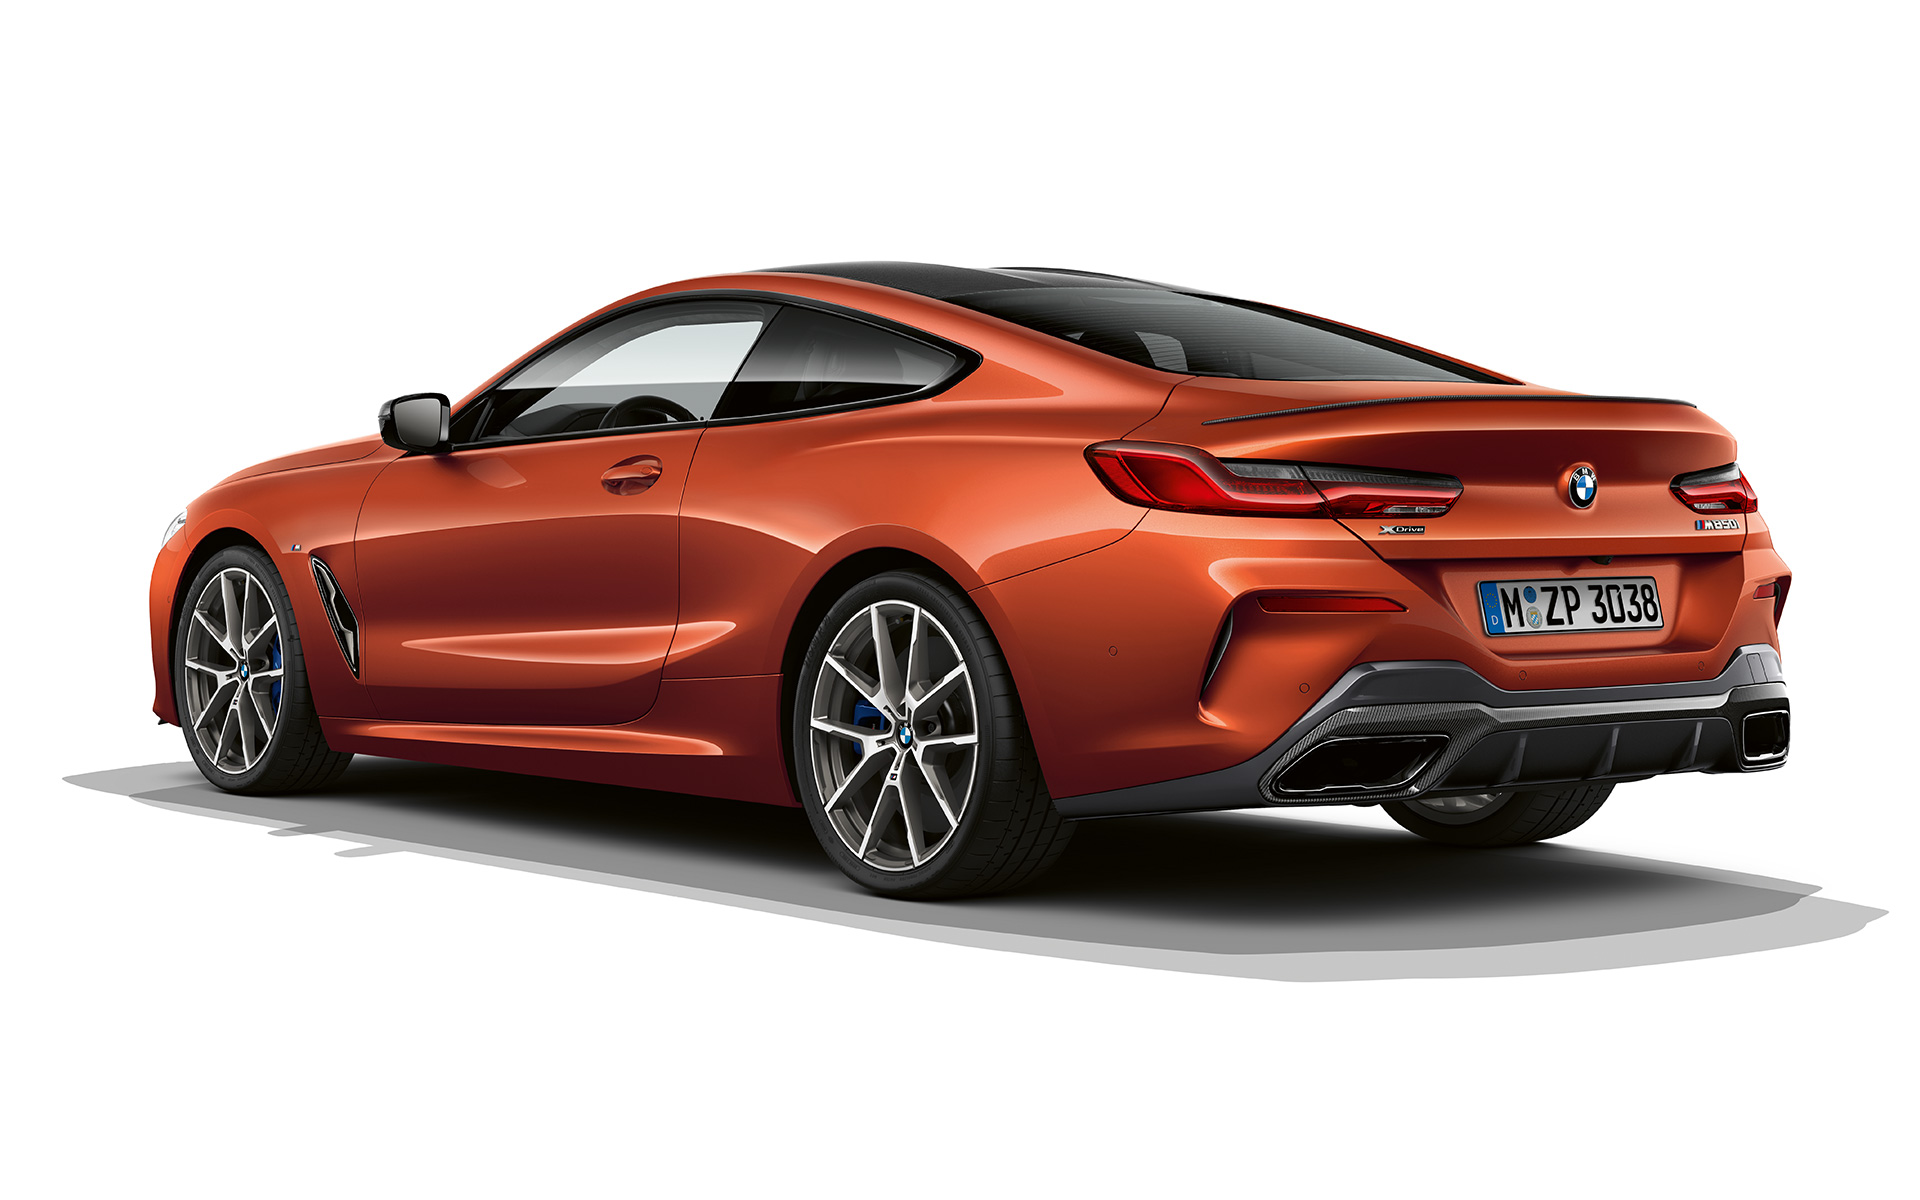 A still shot of the BMW 8 Series Coupé in Sunset Orange metallic against a white background.